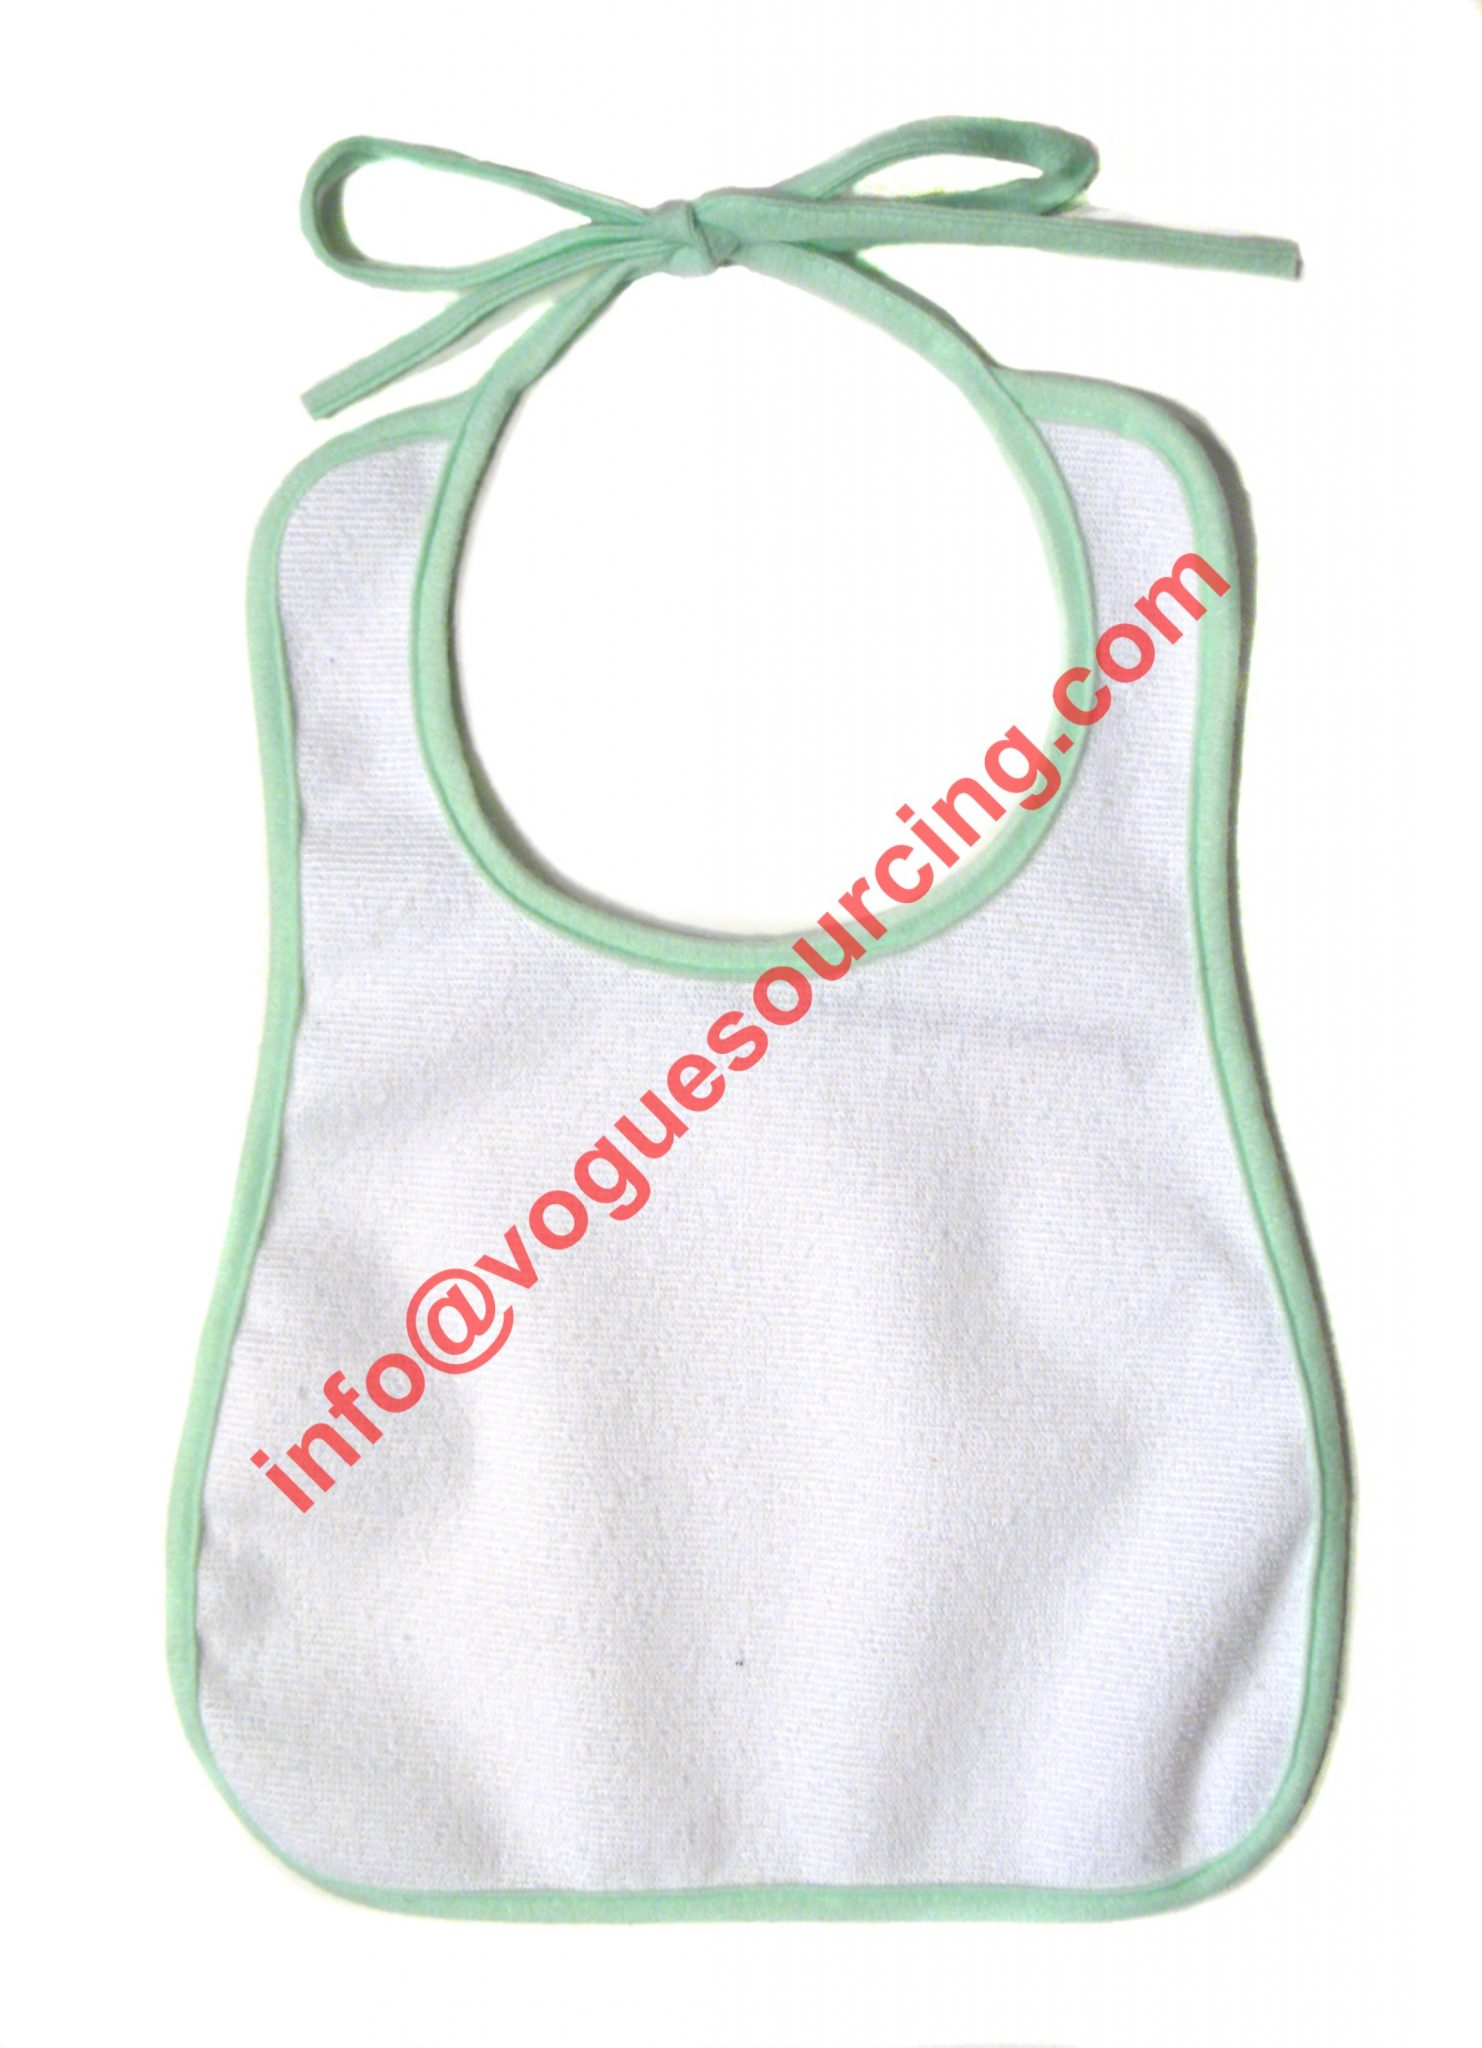 Vogue Sourcing Plain Baby Bib Baby Clothes Manufacturer in Tirupur India